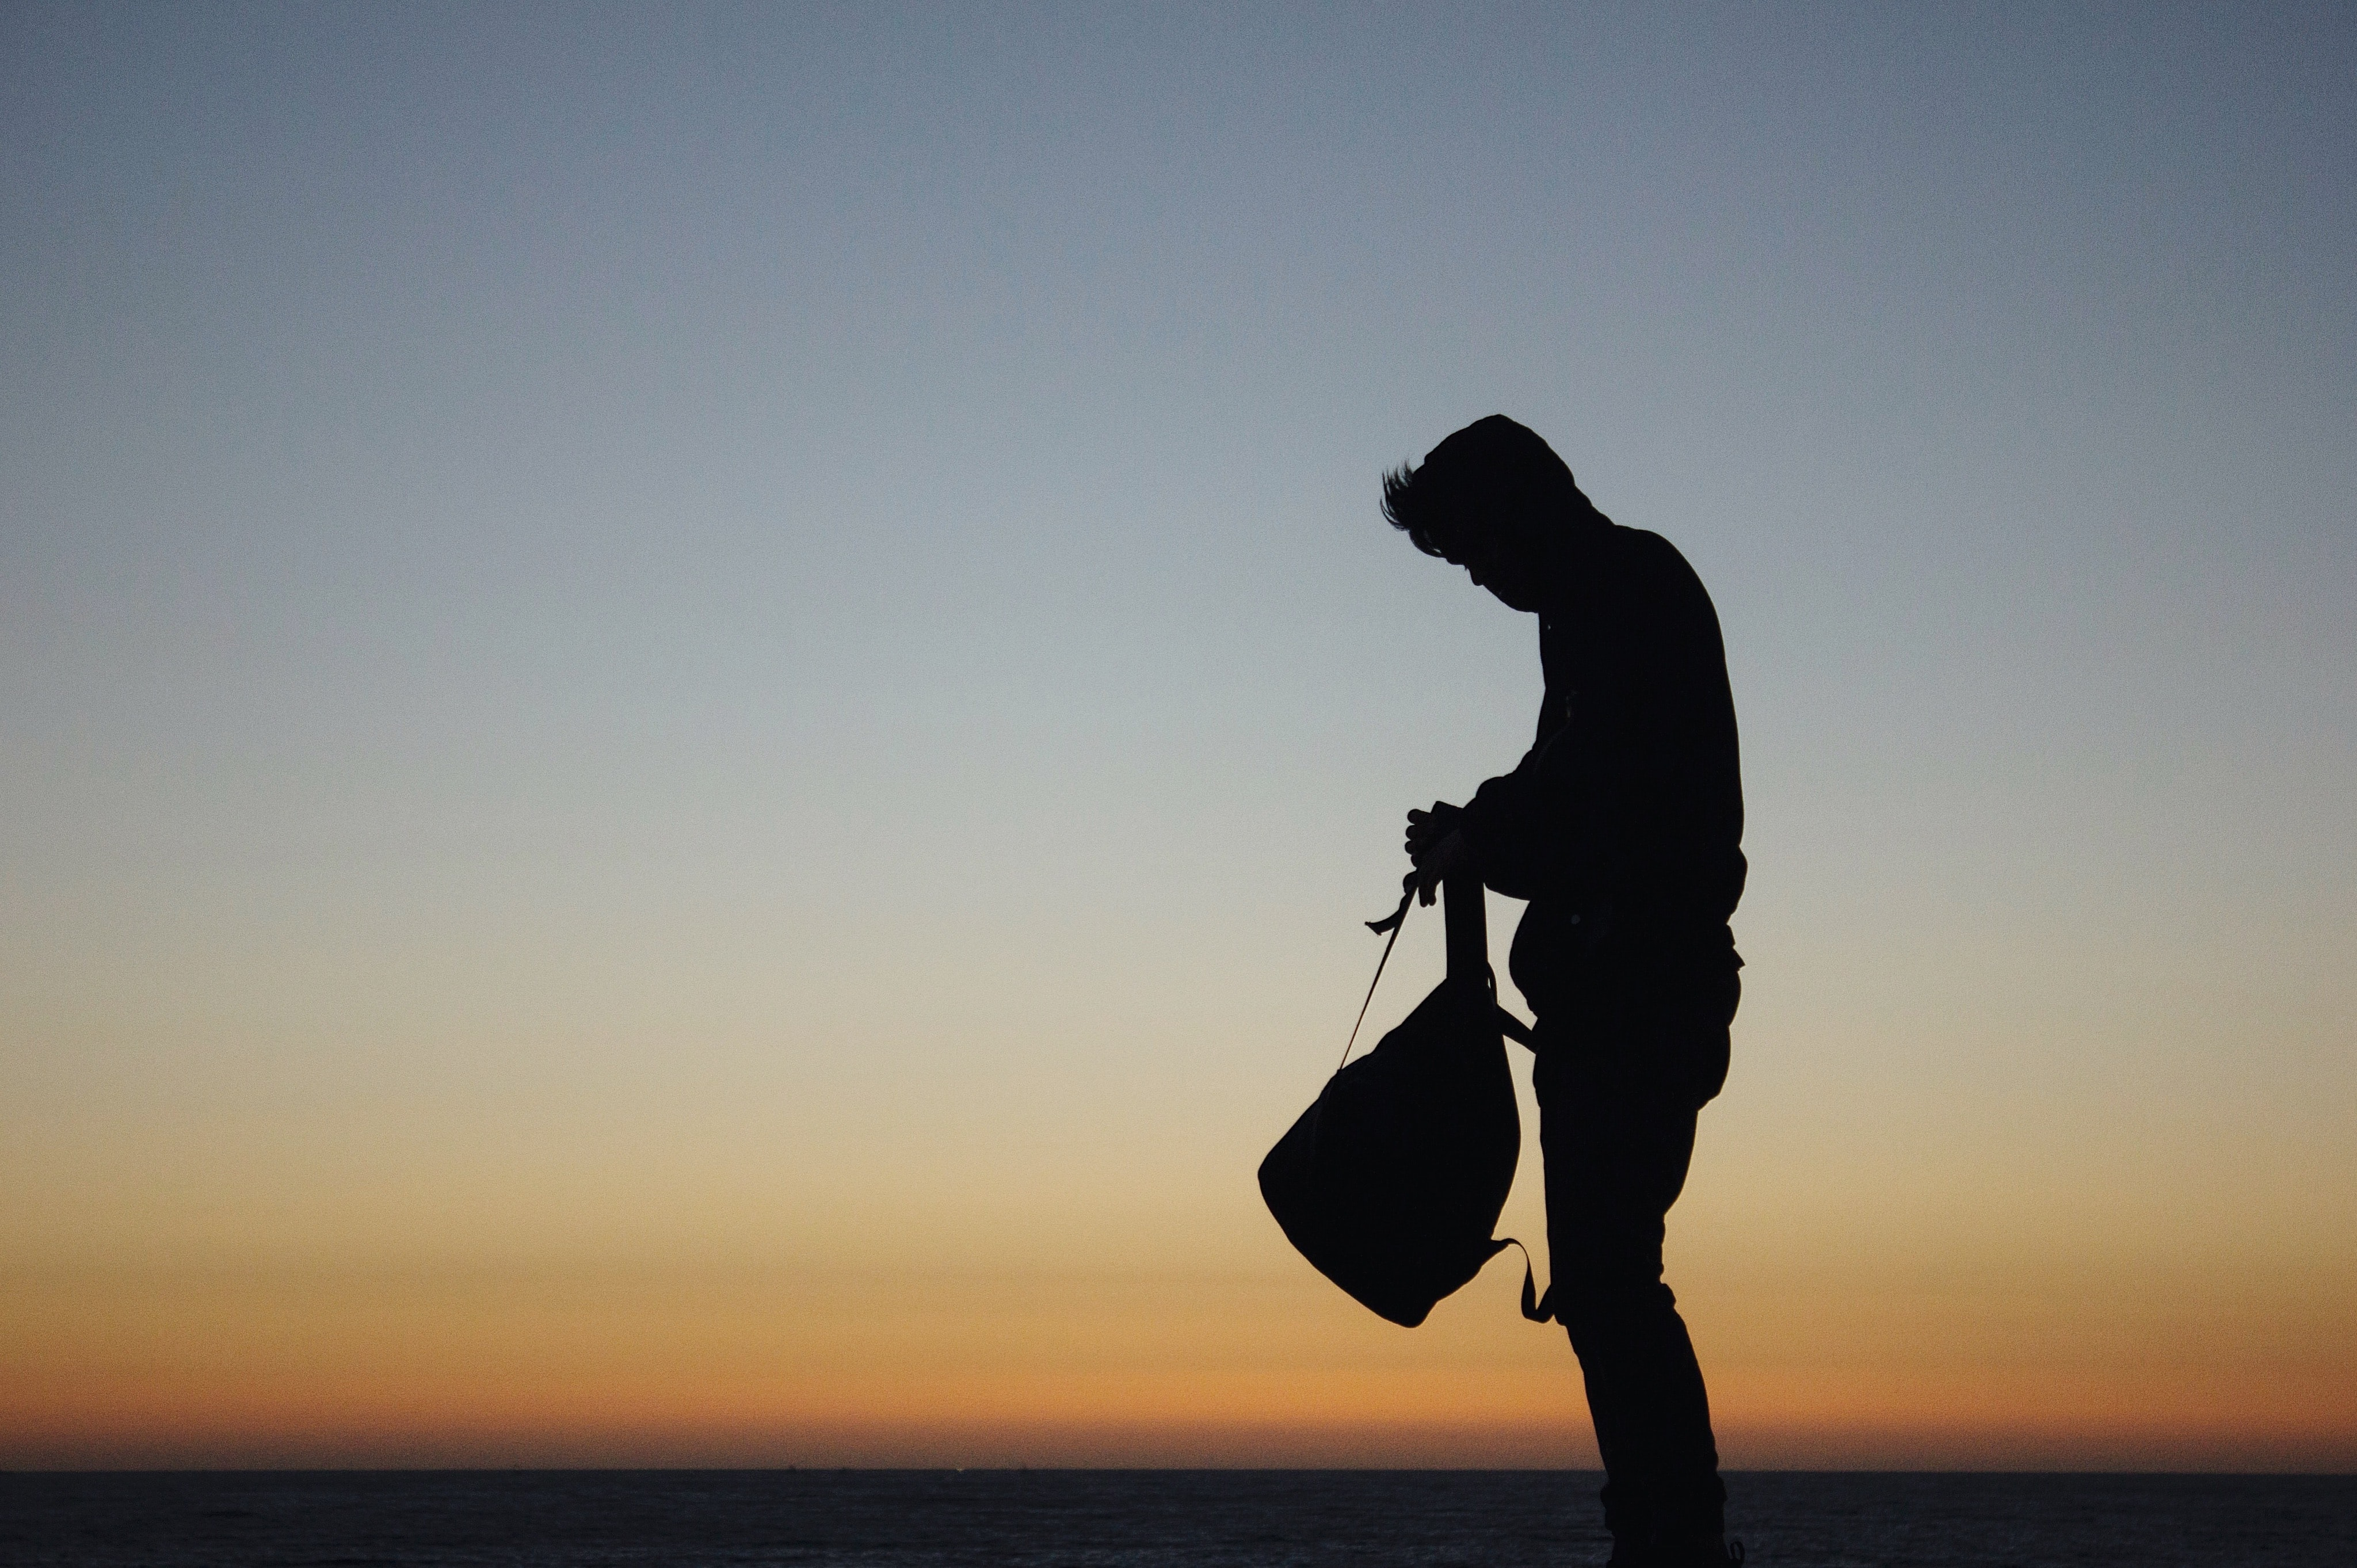 Silhouette of a man adjusting a backpack in front of a horizon sunset